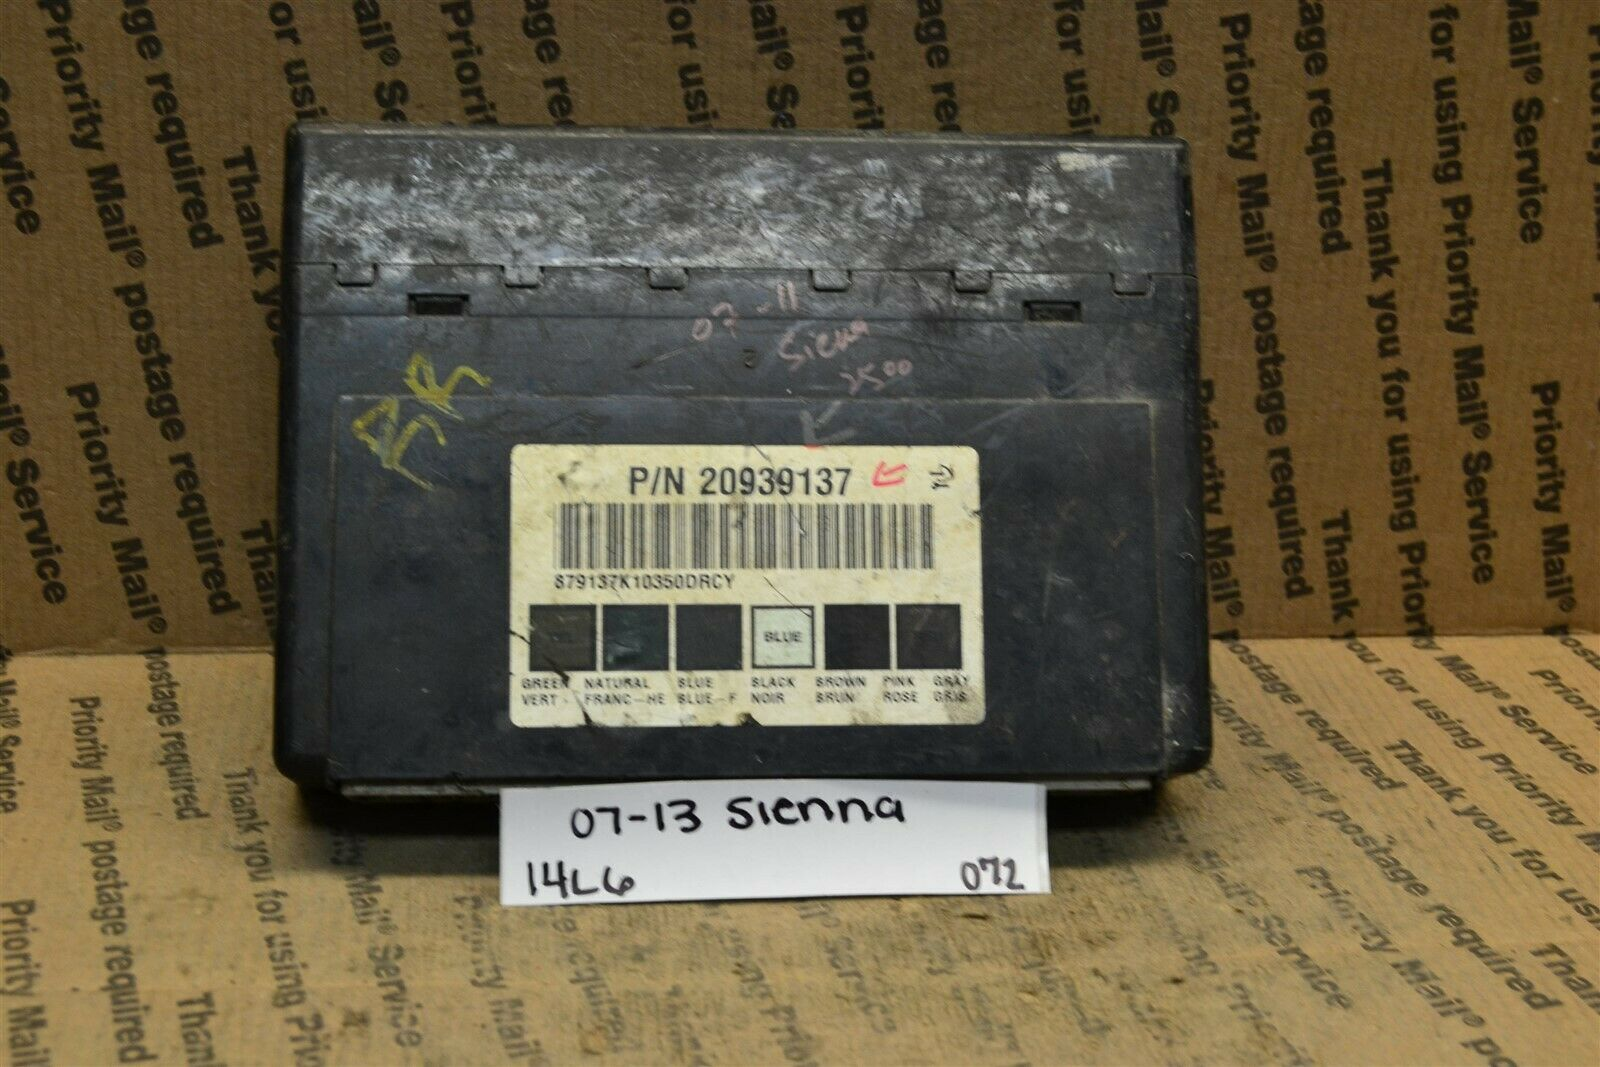 Primary image for 07-13 Gmc Sierra Body Control Module 20939137 BCM 072-14A6